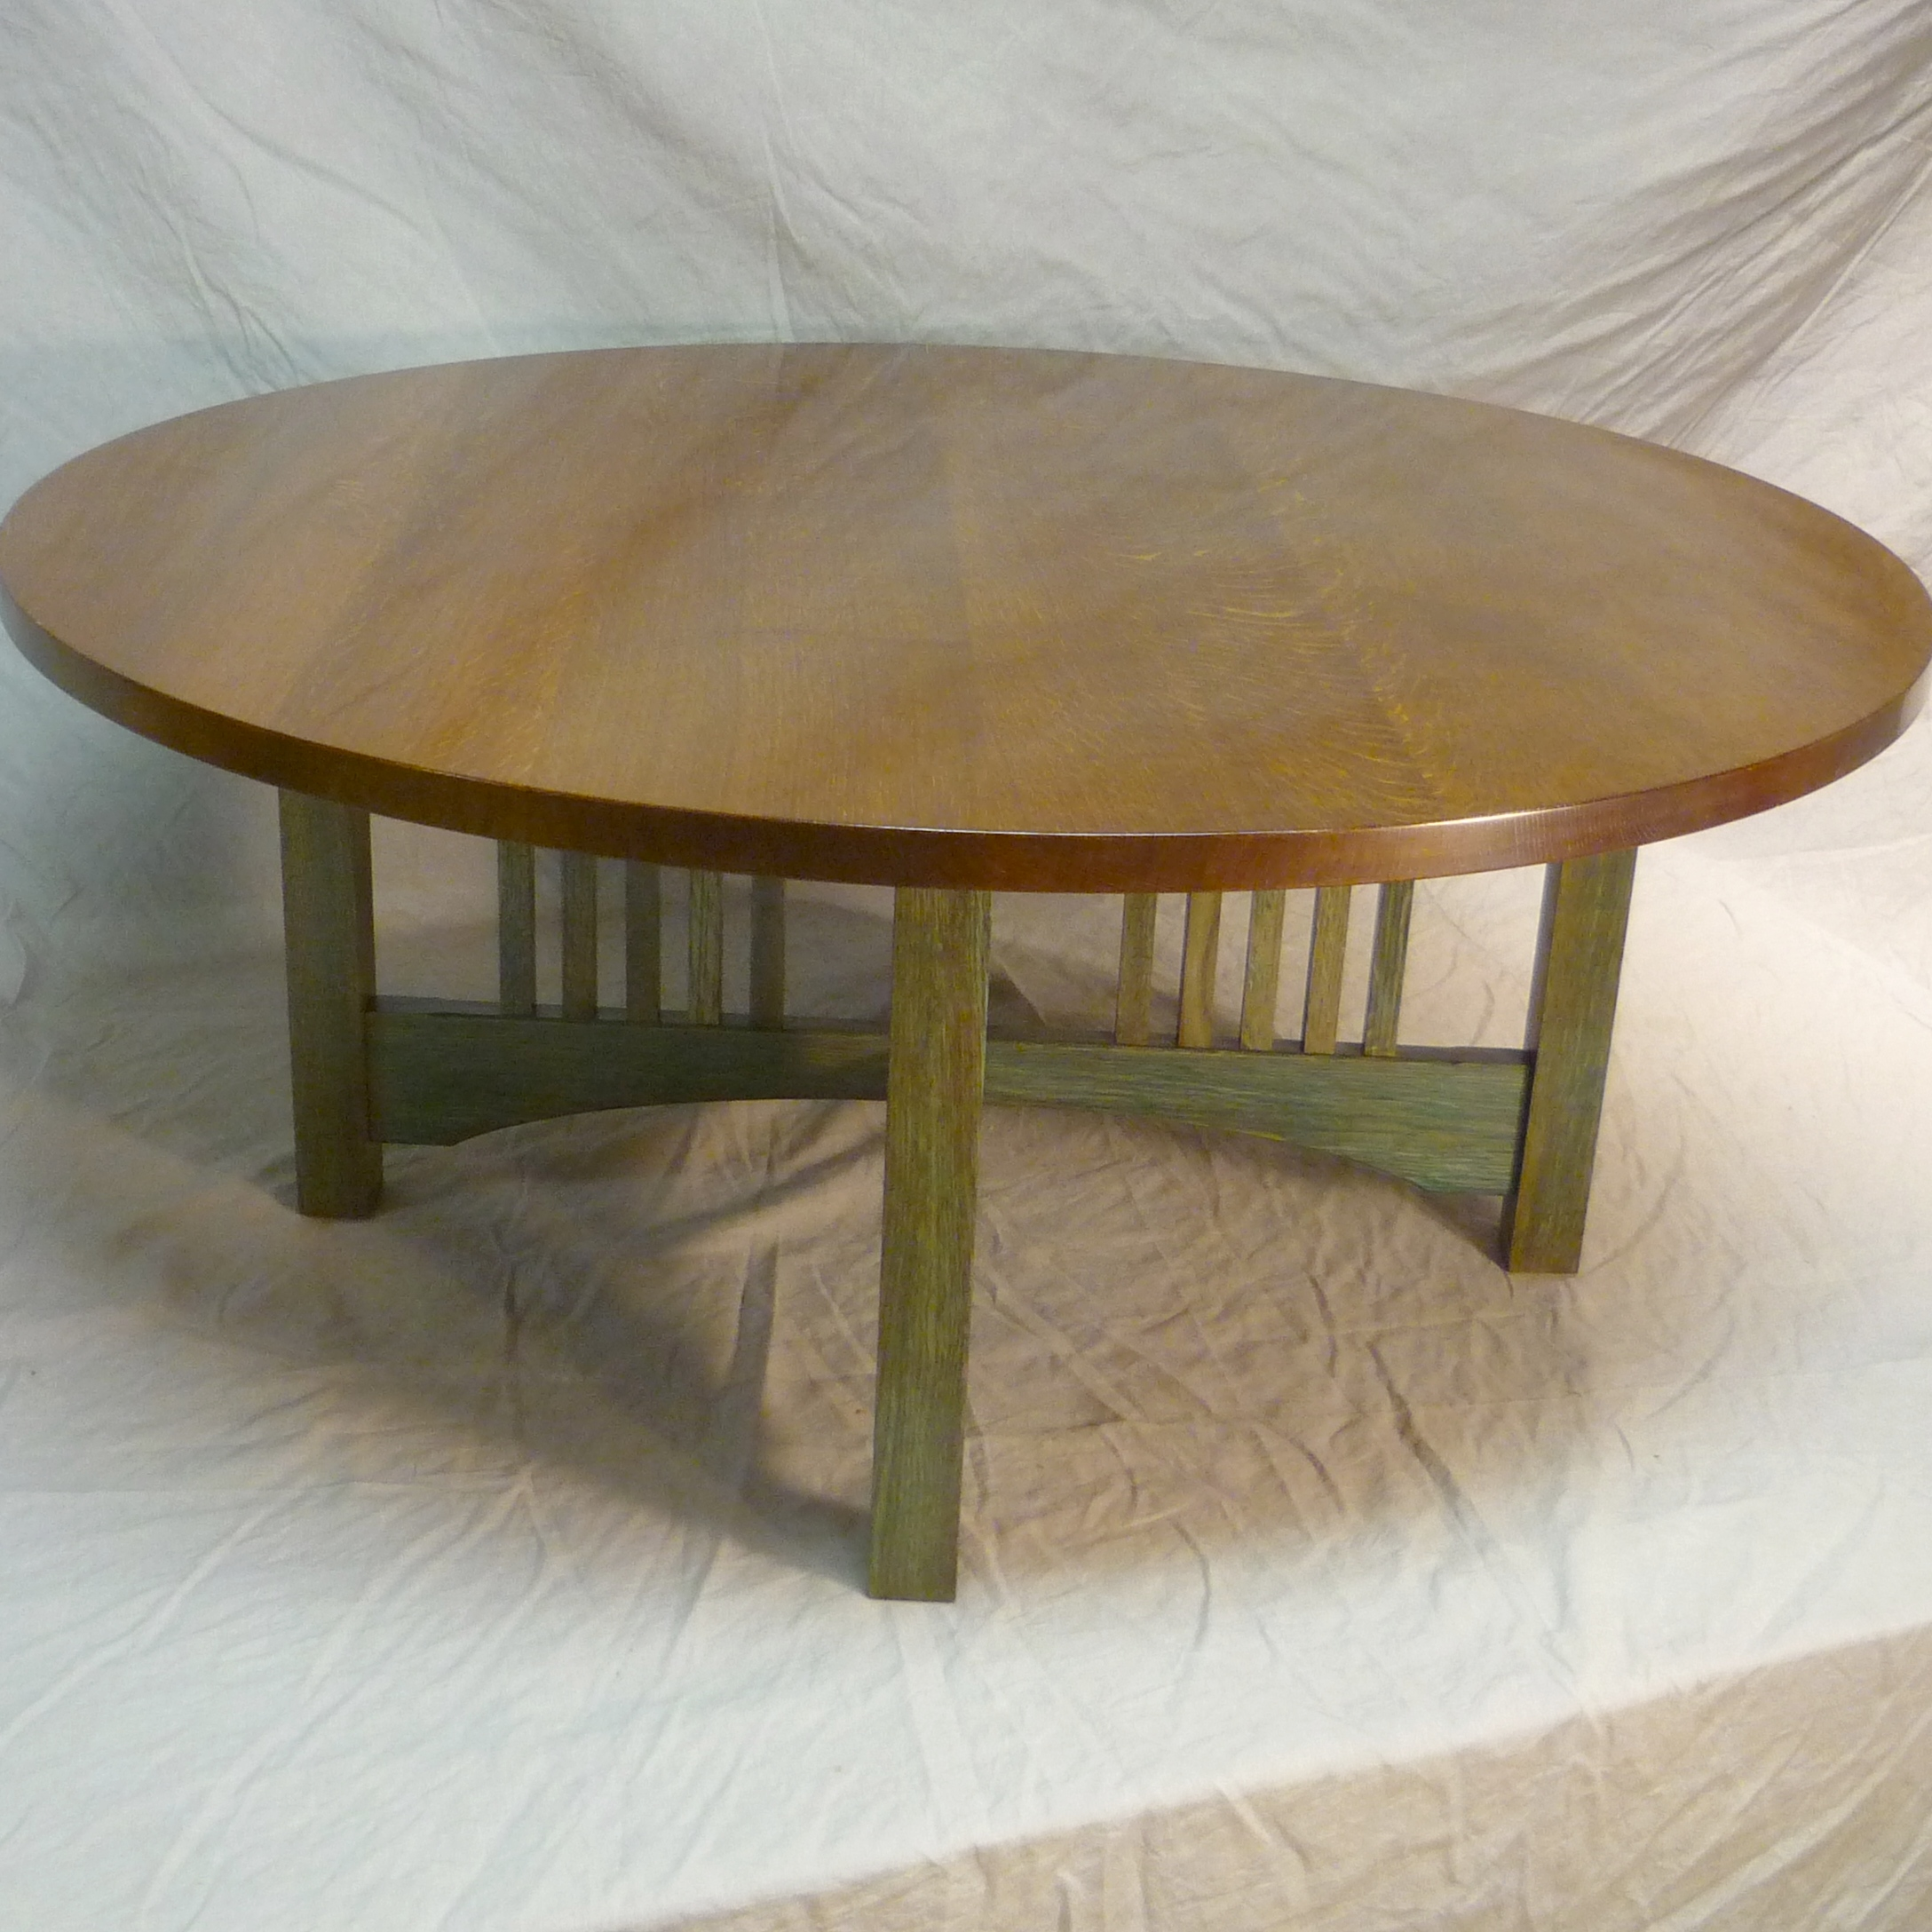 round oak with green legs square format.JPG